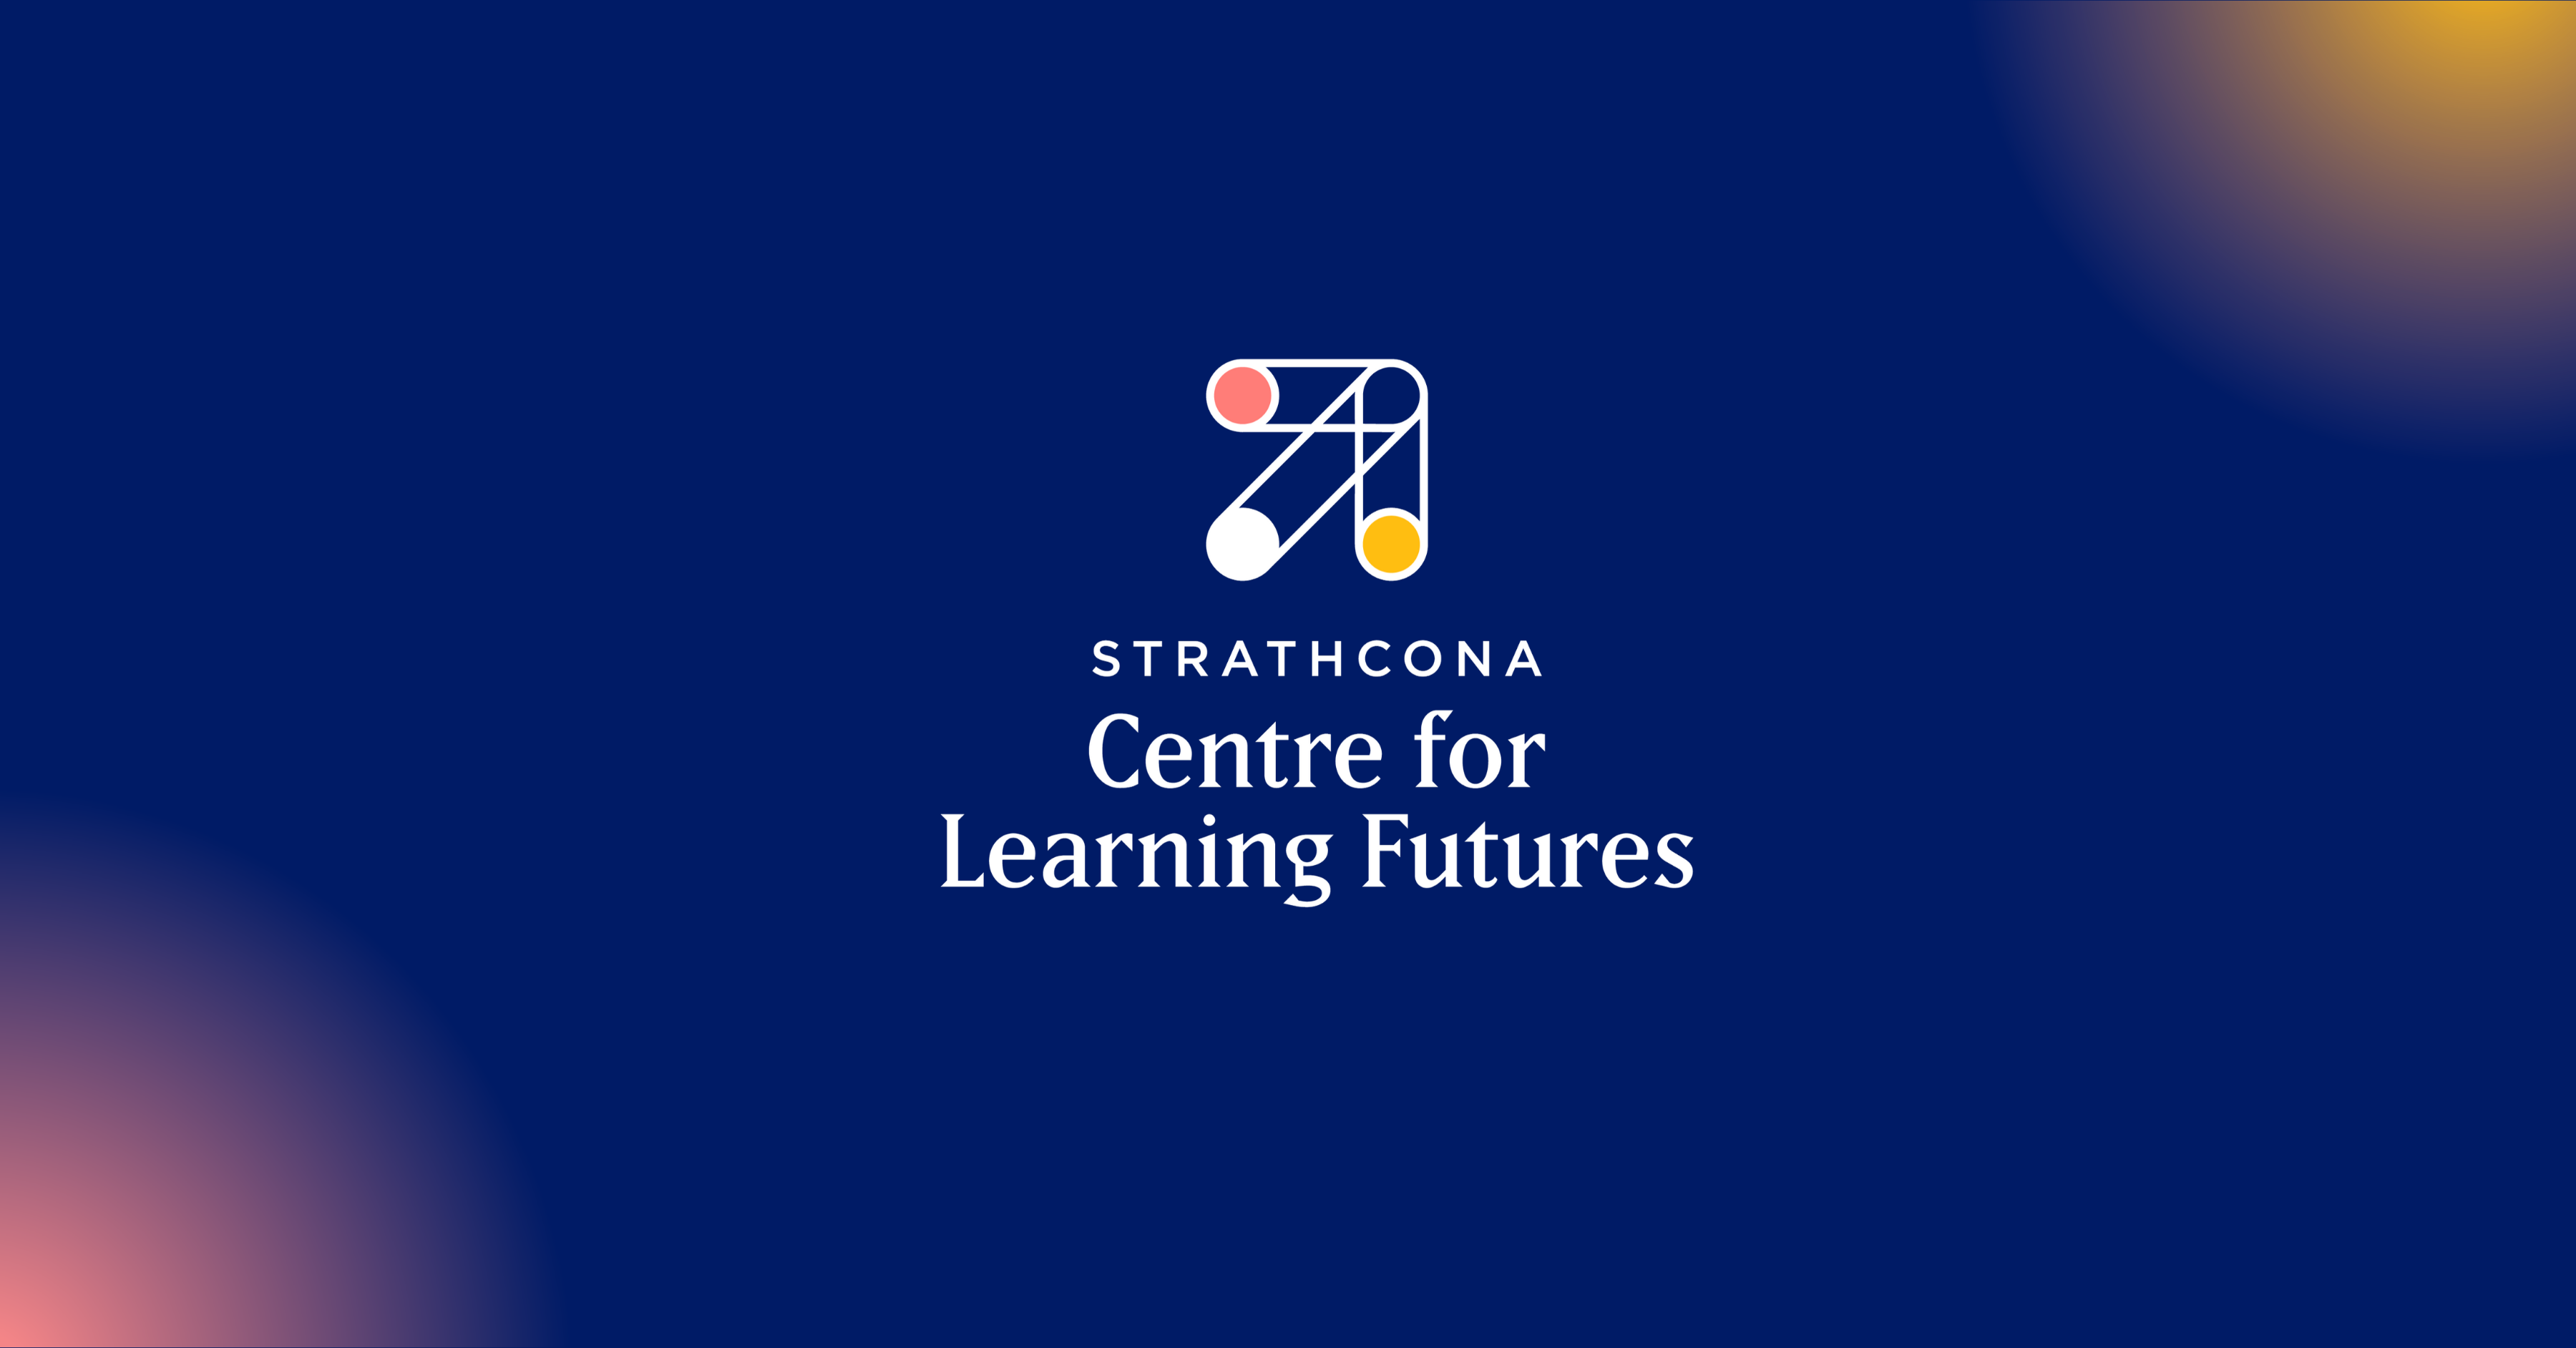 Centre for Learning Futures